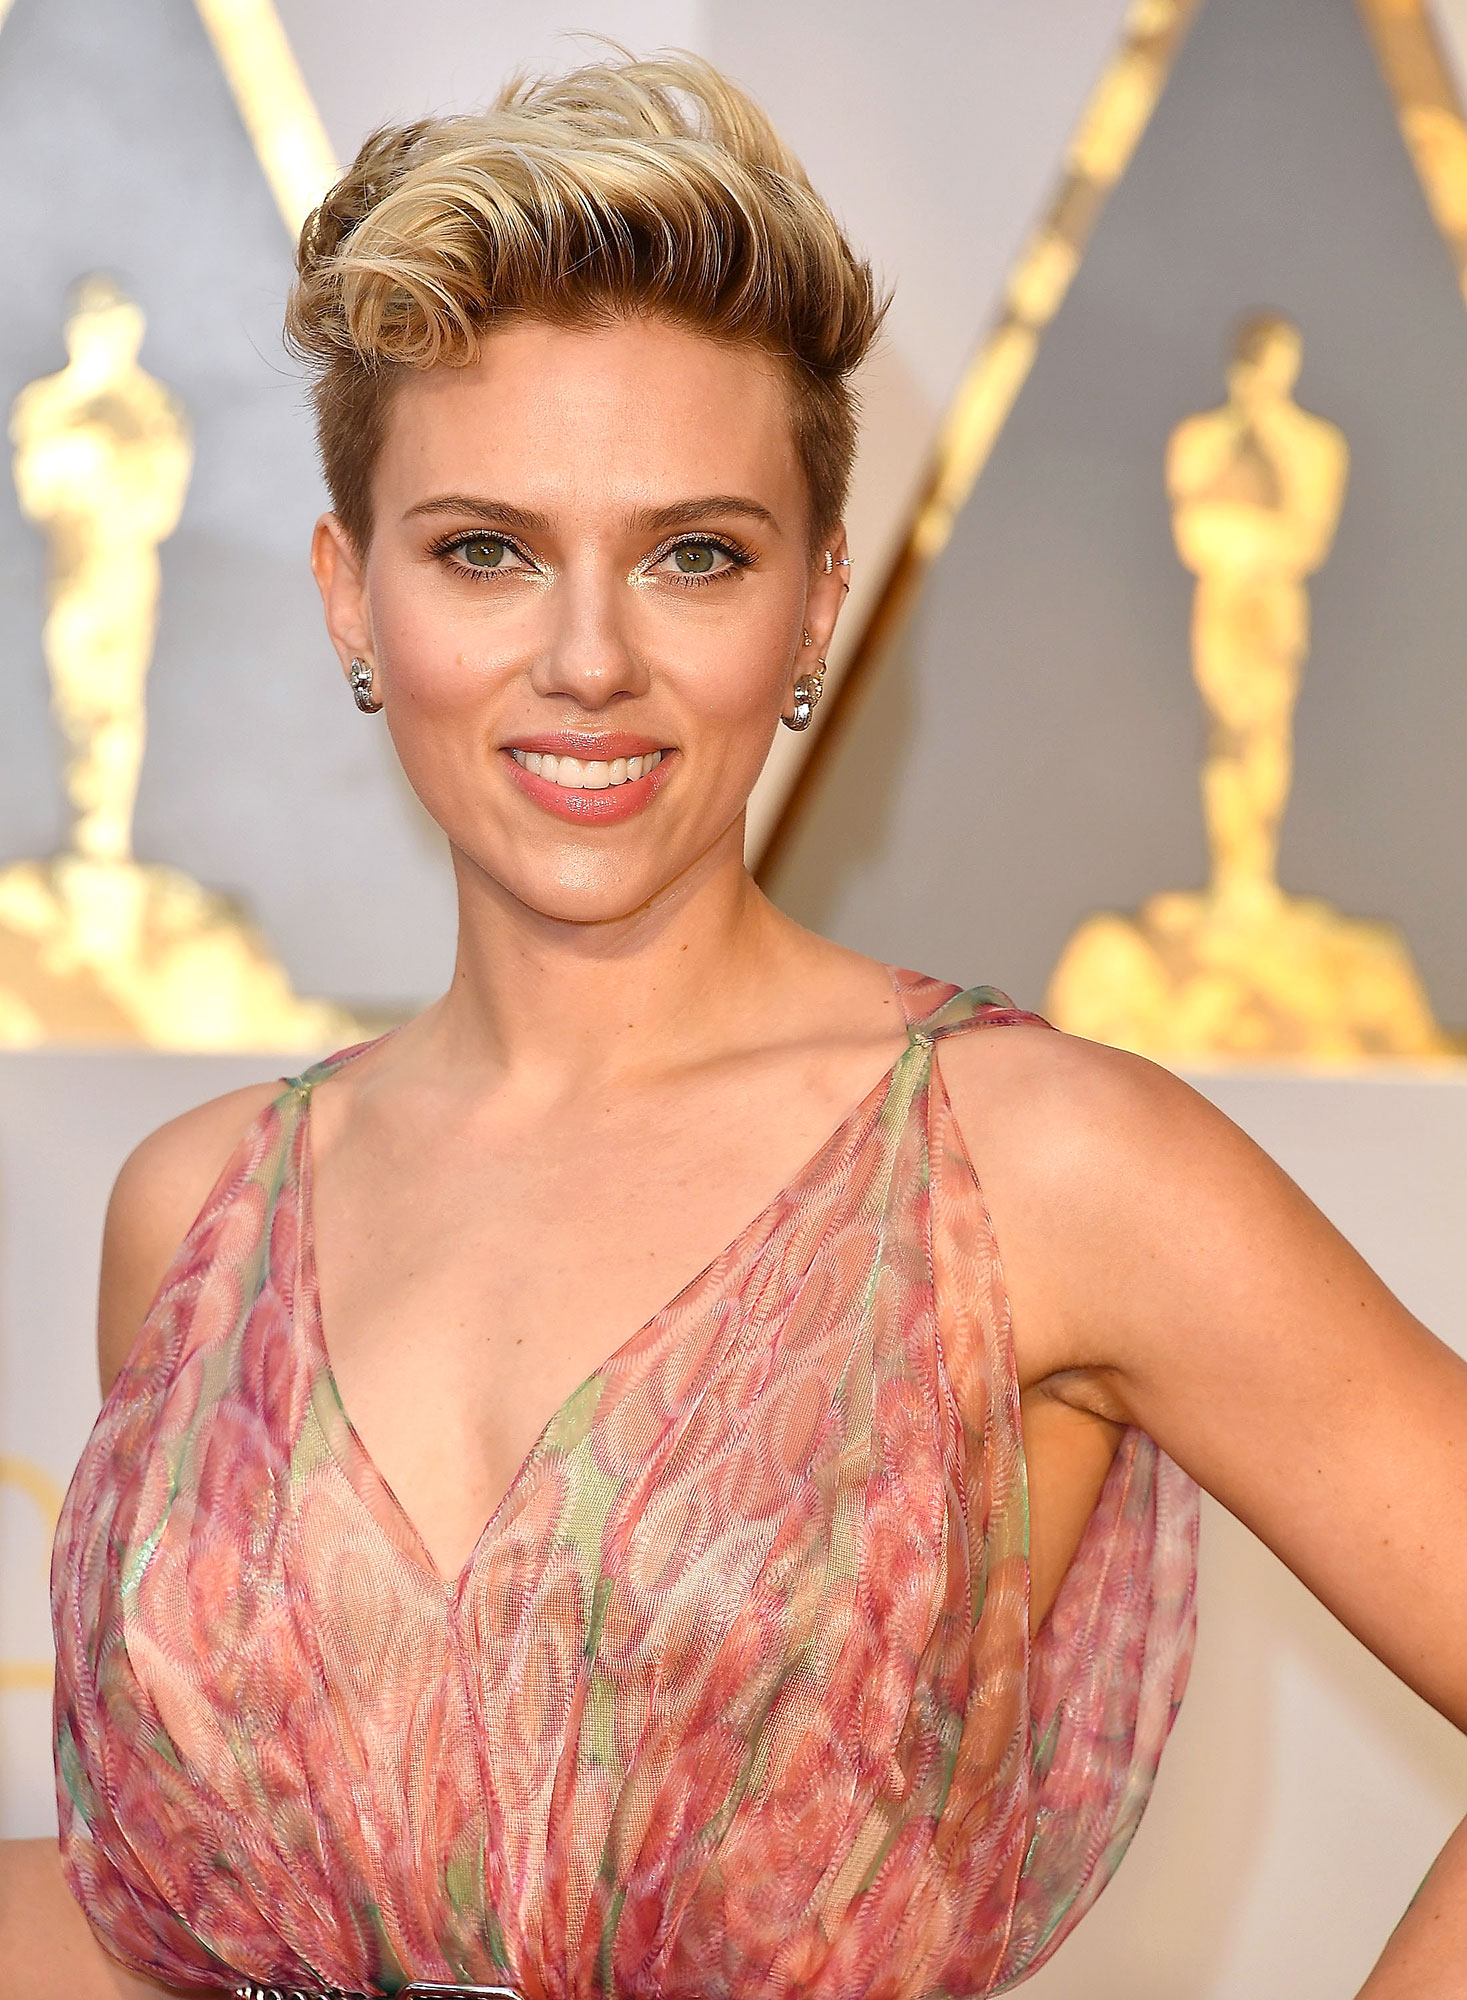 Scarlett Johansson - Stars Who Have Never Won Oscars - Johansson may have a massive contract for her Marvel films (she's been a part of the franchise since 2010), but the one thing this superhero doesn't have is an Oscar. In fact, the Match Point star has never even been nominated.